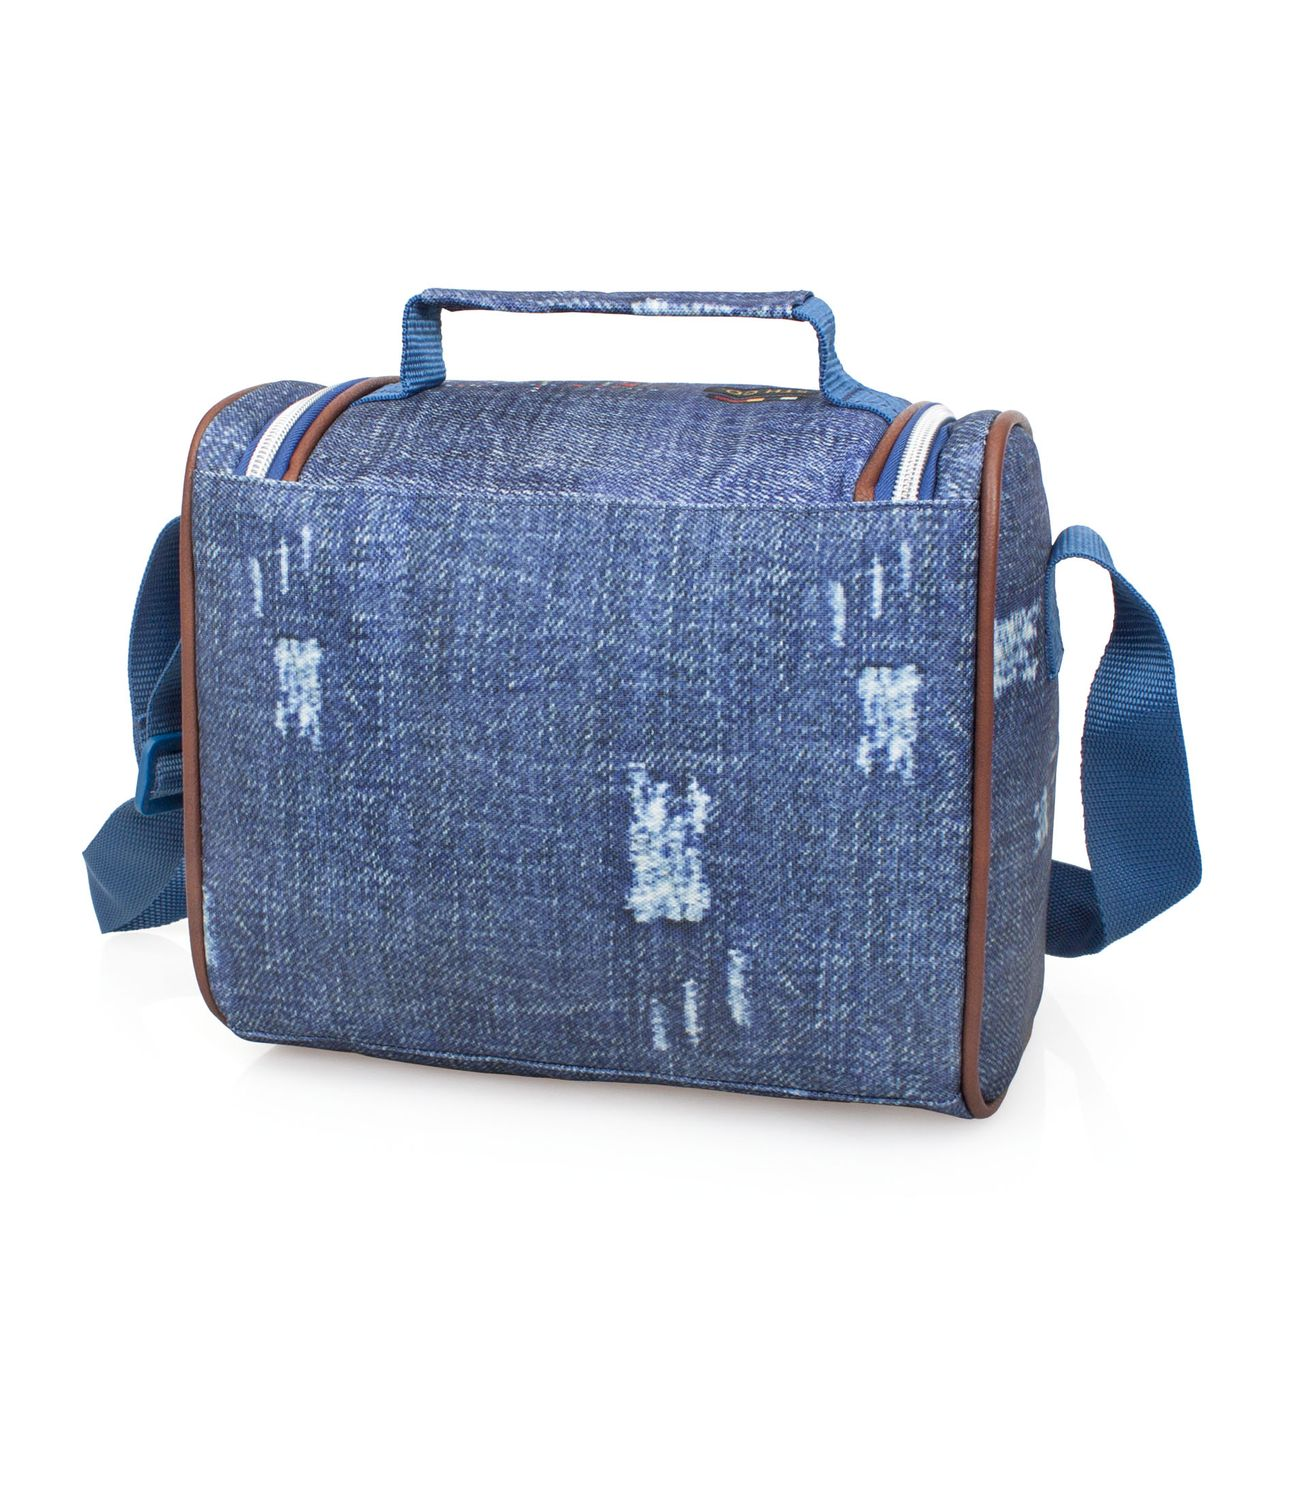 EL CHARRO Cooler Lunch Bag DENIM – image 2